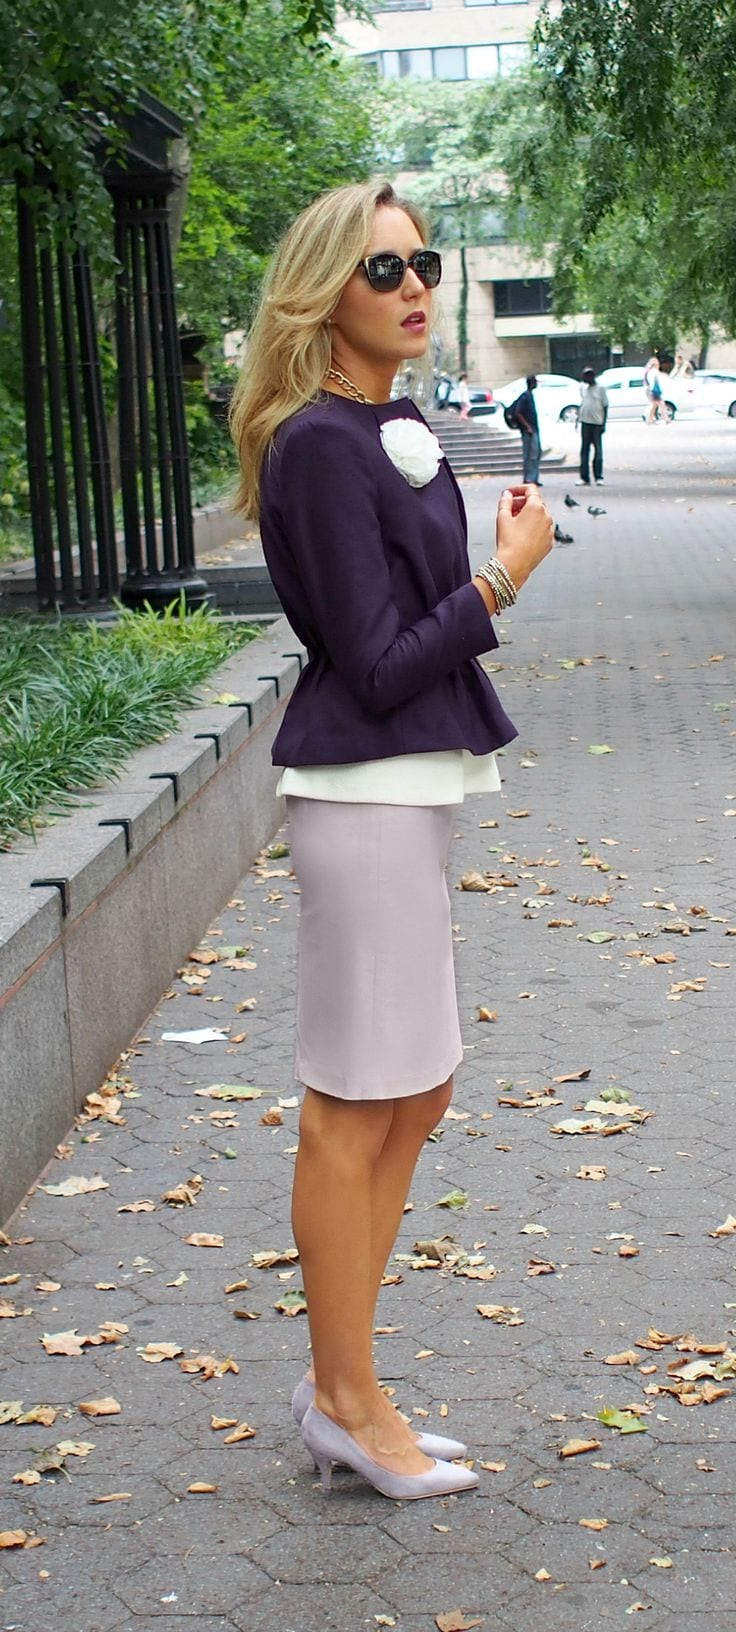 Fashion-Ideas-for-Women-in-30s6 45 Latest Fashion Ideas for Women in 30's - Outfits & Style